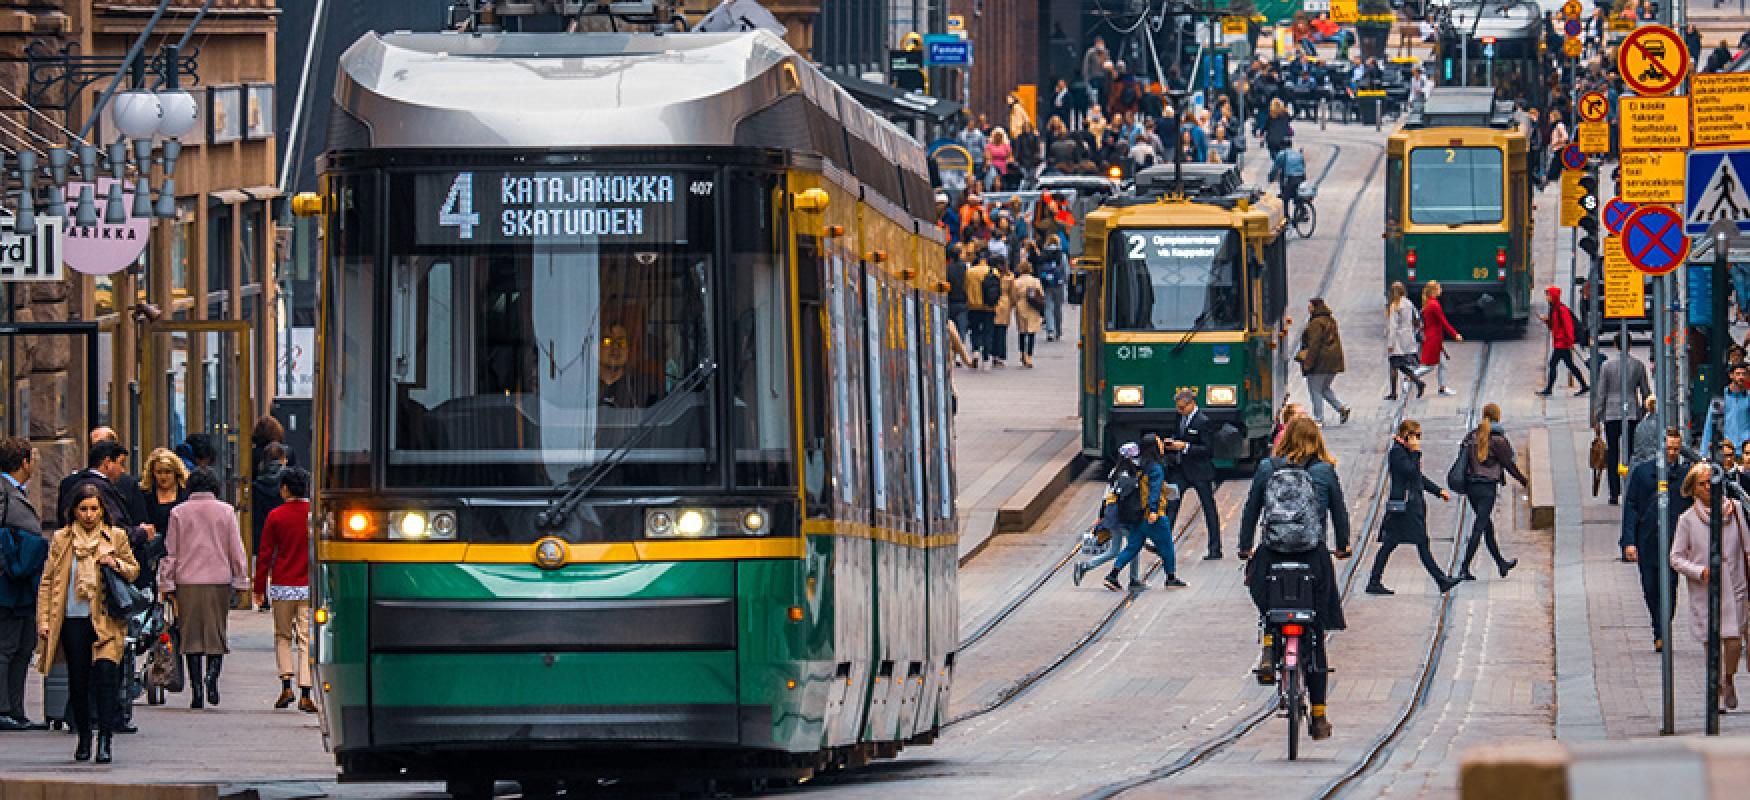 Trams and bikers in a city centrum.